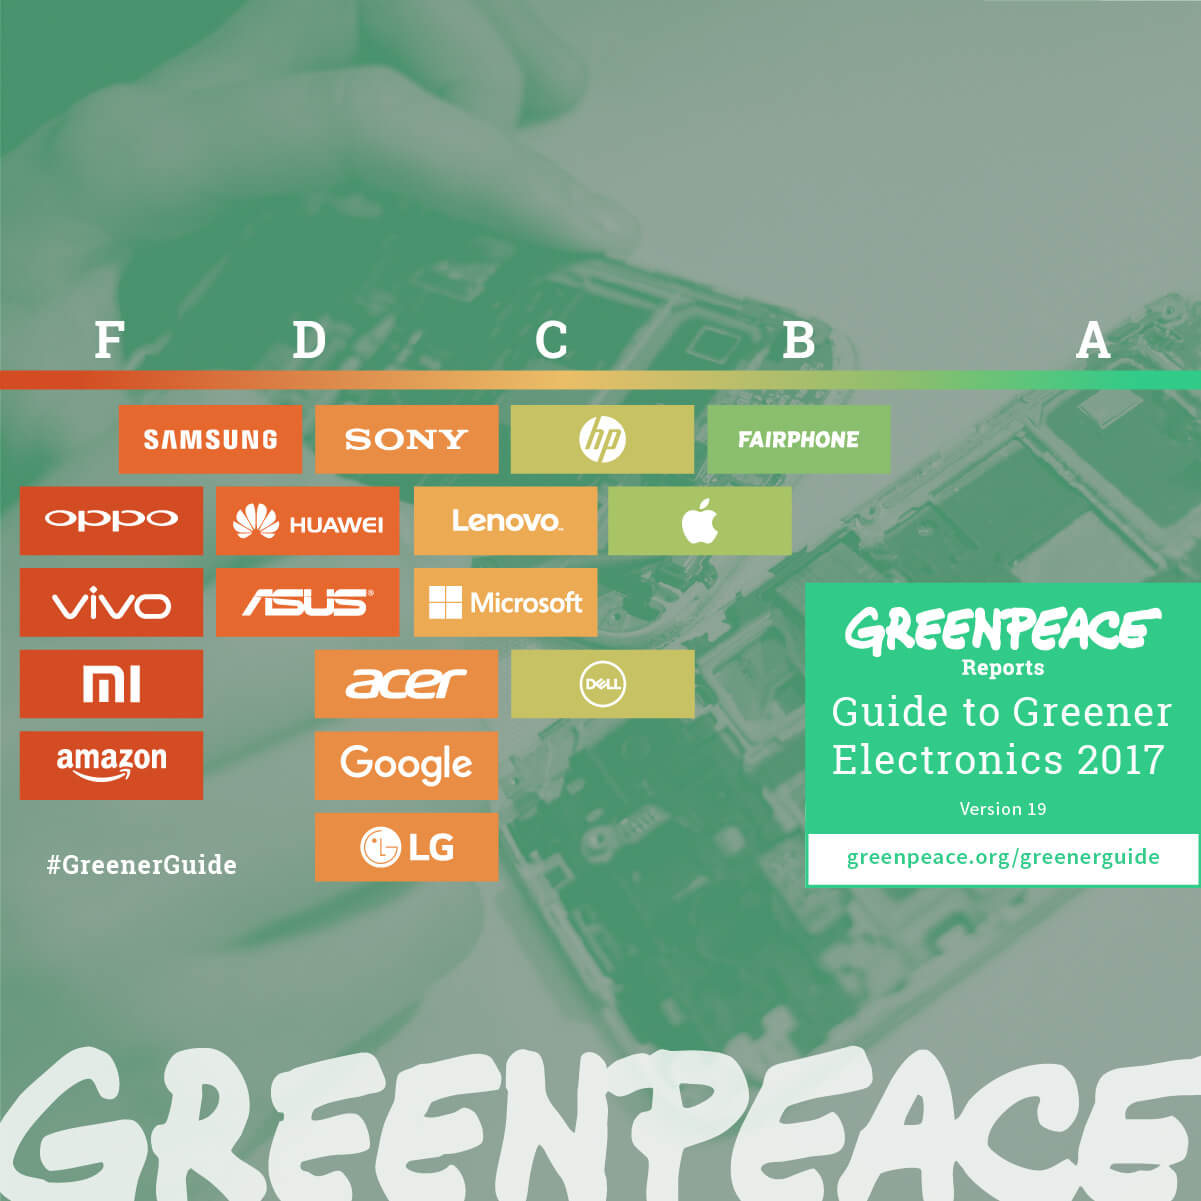 Greenpeace Report Guide To Greener Electronics 2017 Usa Element Case Sector Apple Iphone 7 Plus Citron